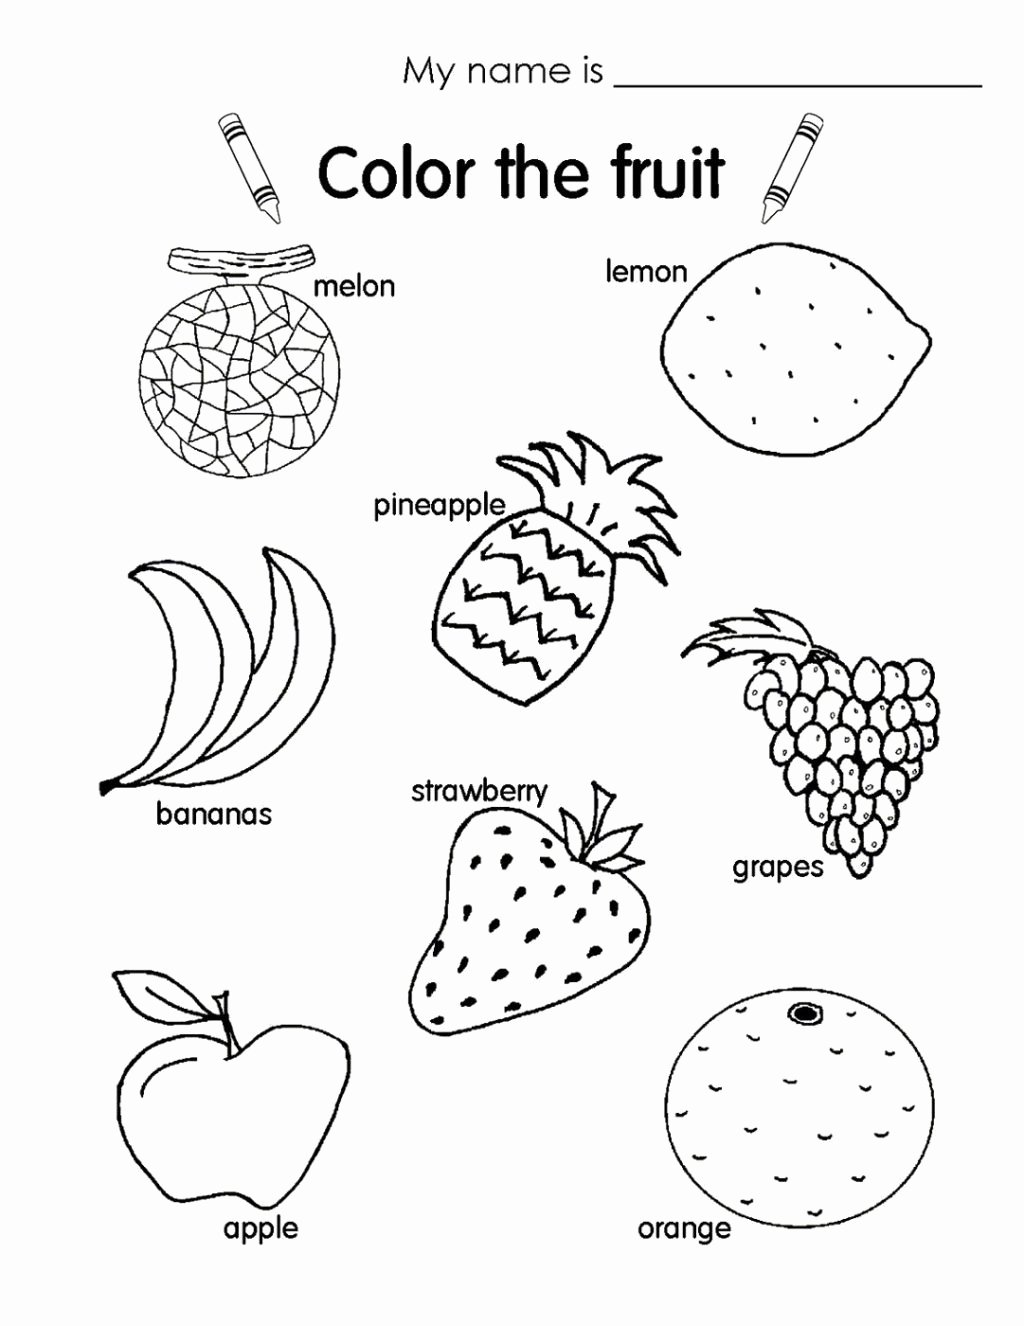 Fruits Worksheets for Preschoolers Fresh Worksheet Funorksheets for Kids Picture Ideasorksheet